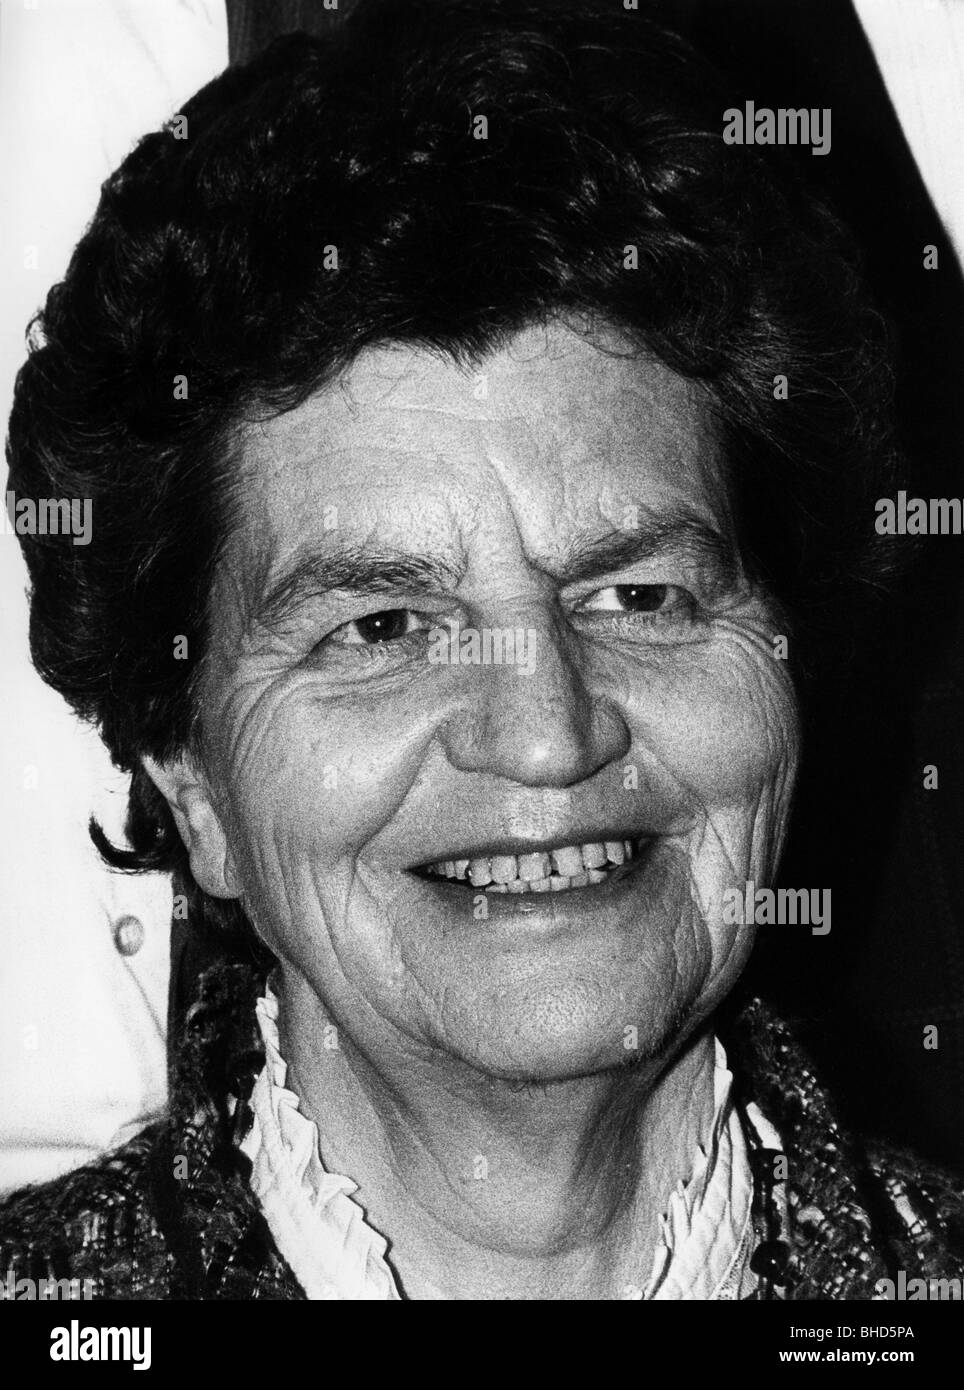 Funcke, Liselotte, 20.7.1918 - 2.8.2012, German politician (FDP), Federal Commissioner for Foreigners, portrait, - Stock Image